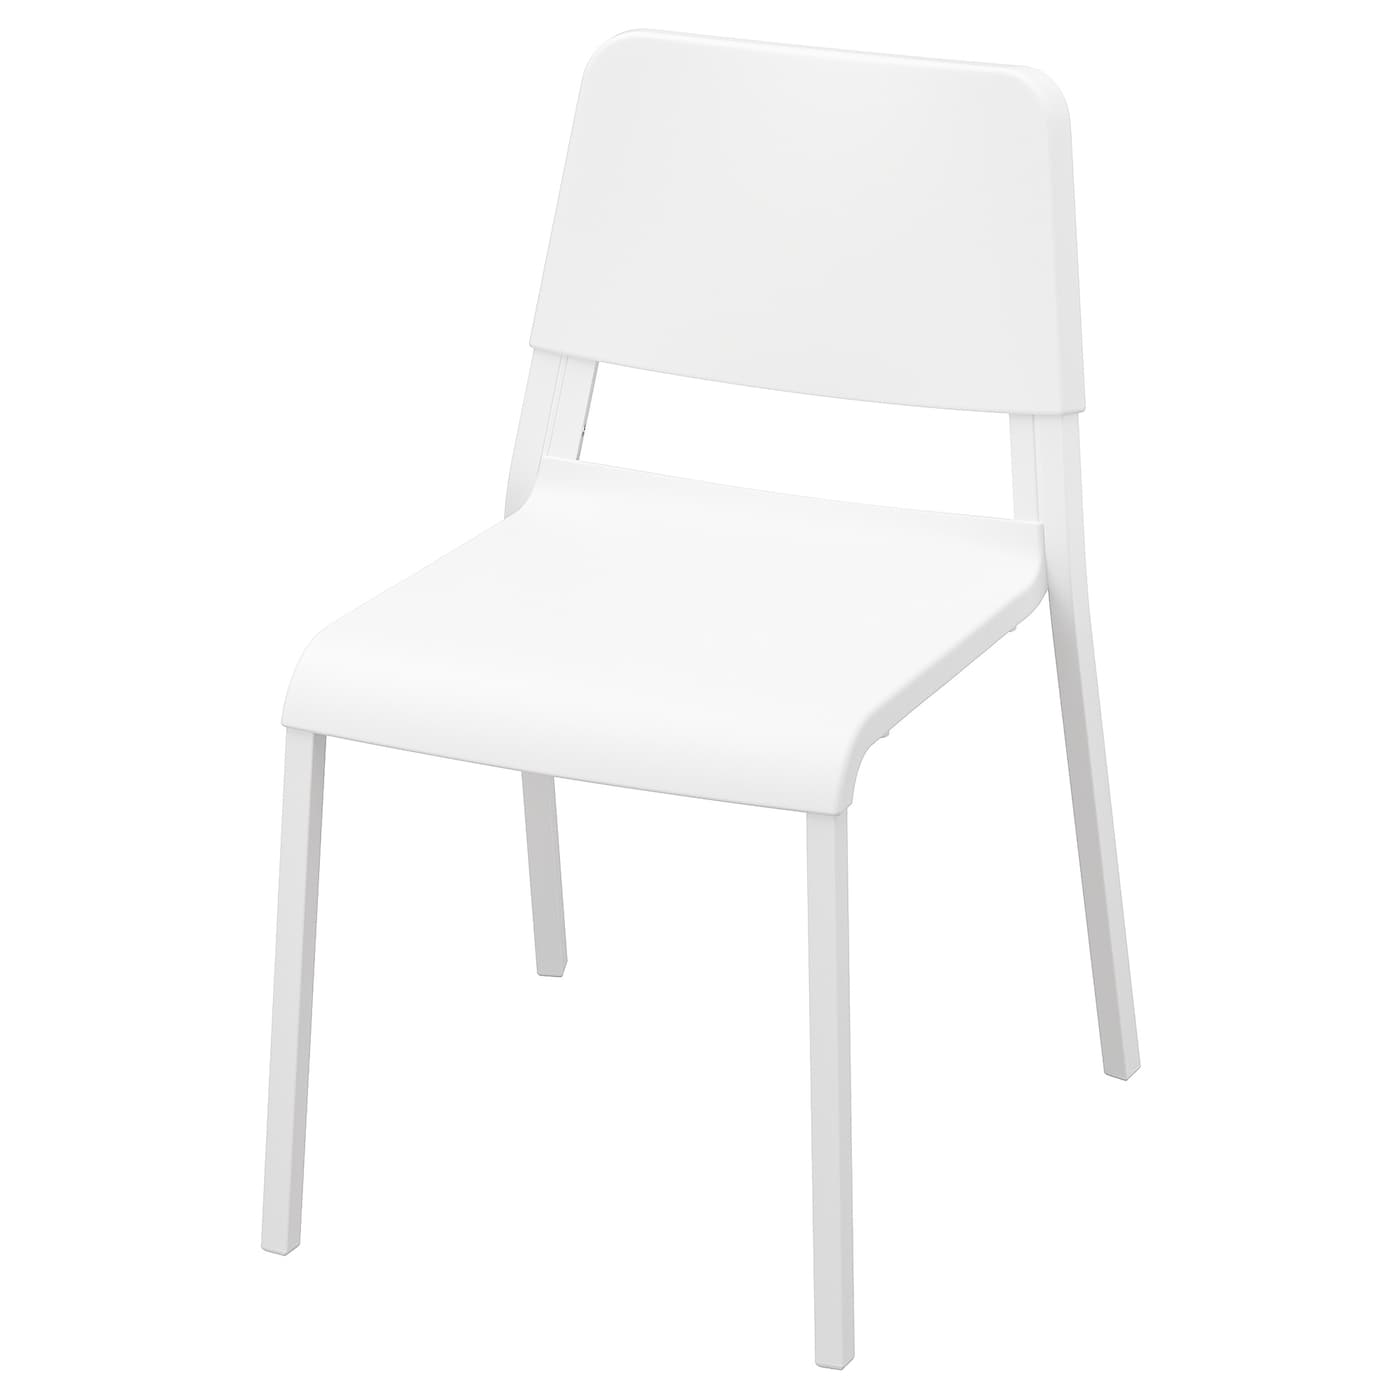 TEODORES Chair - white - IKEA